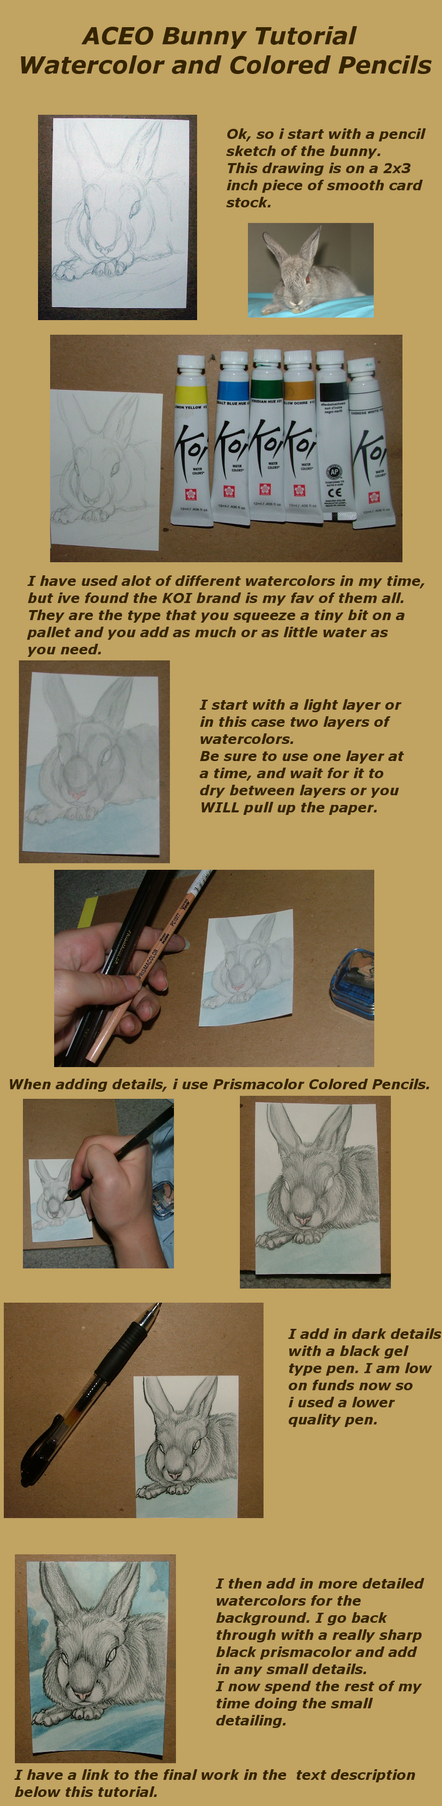 ACEO Rabbit Coloring Tutorial by MorRokko